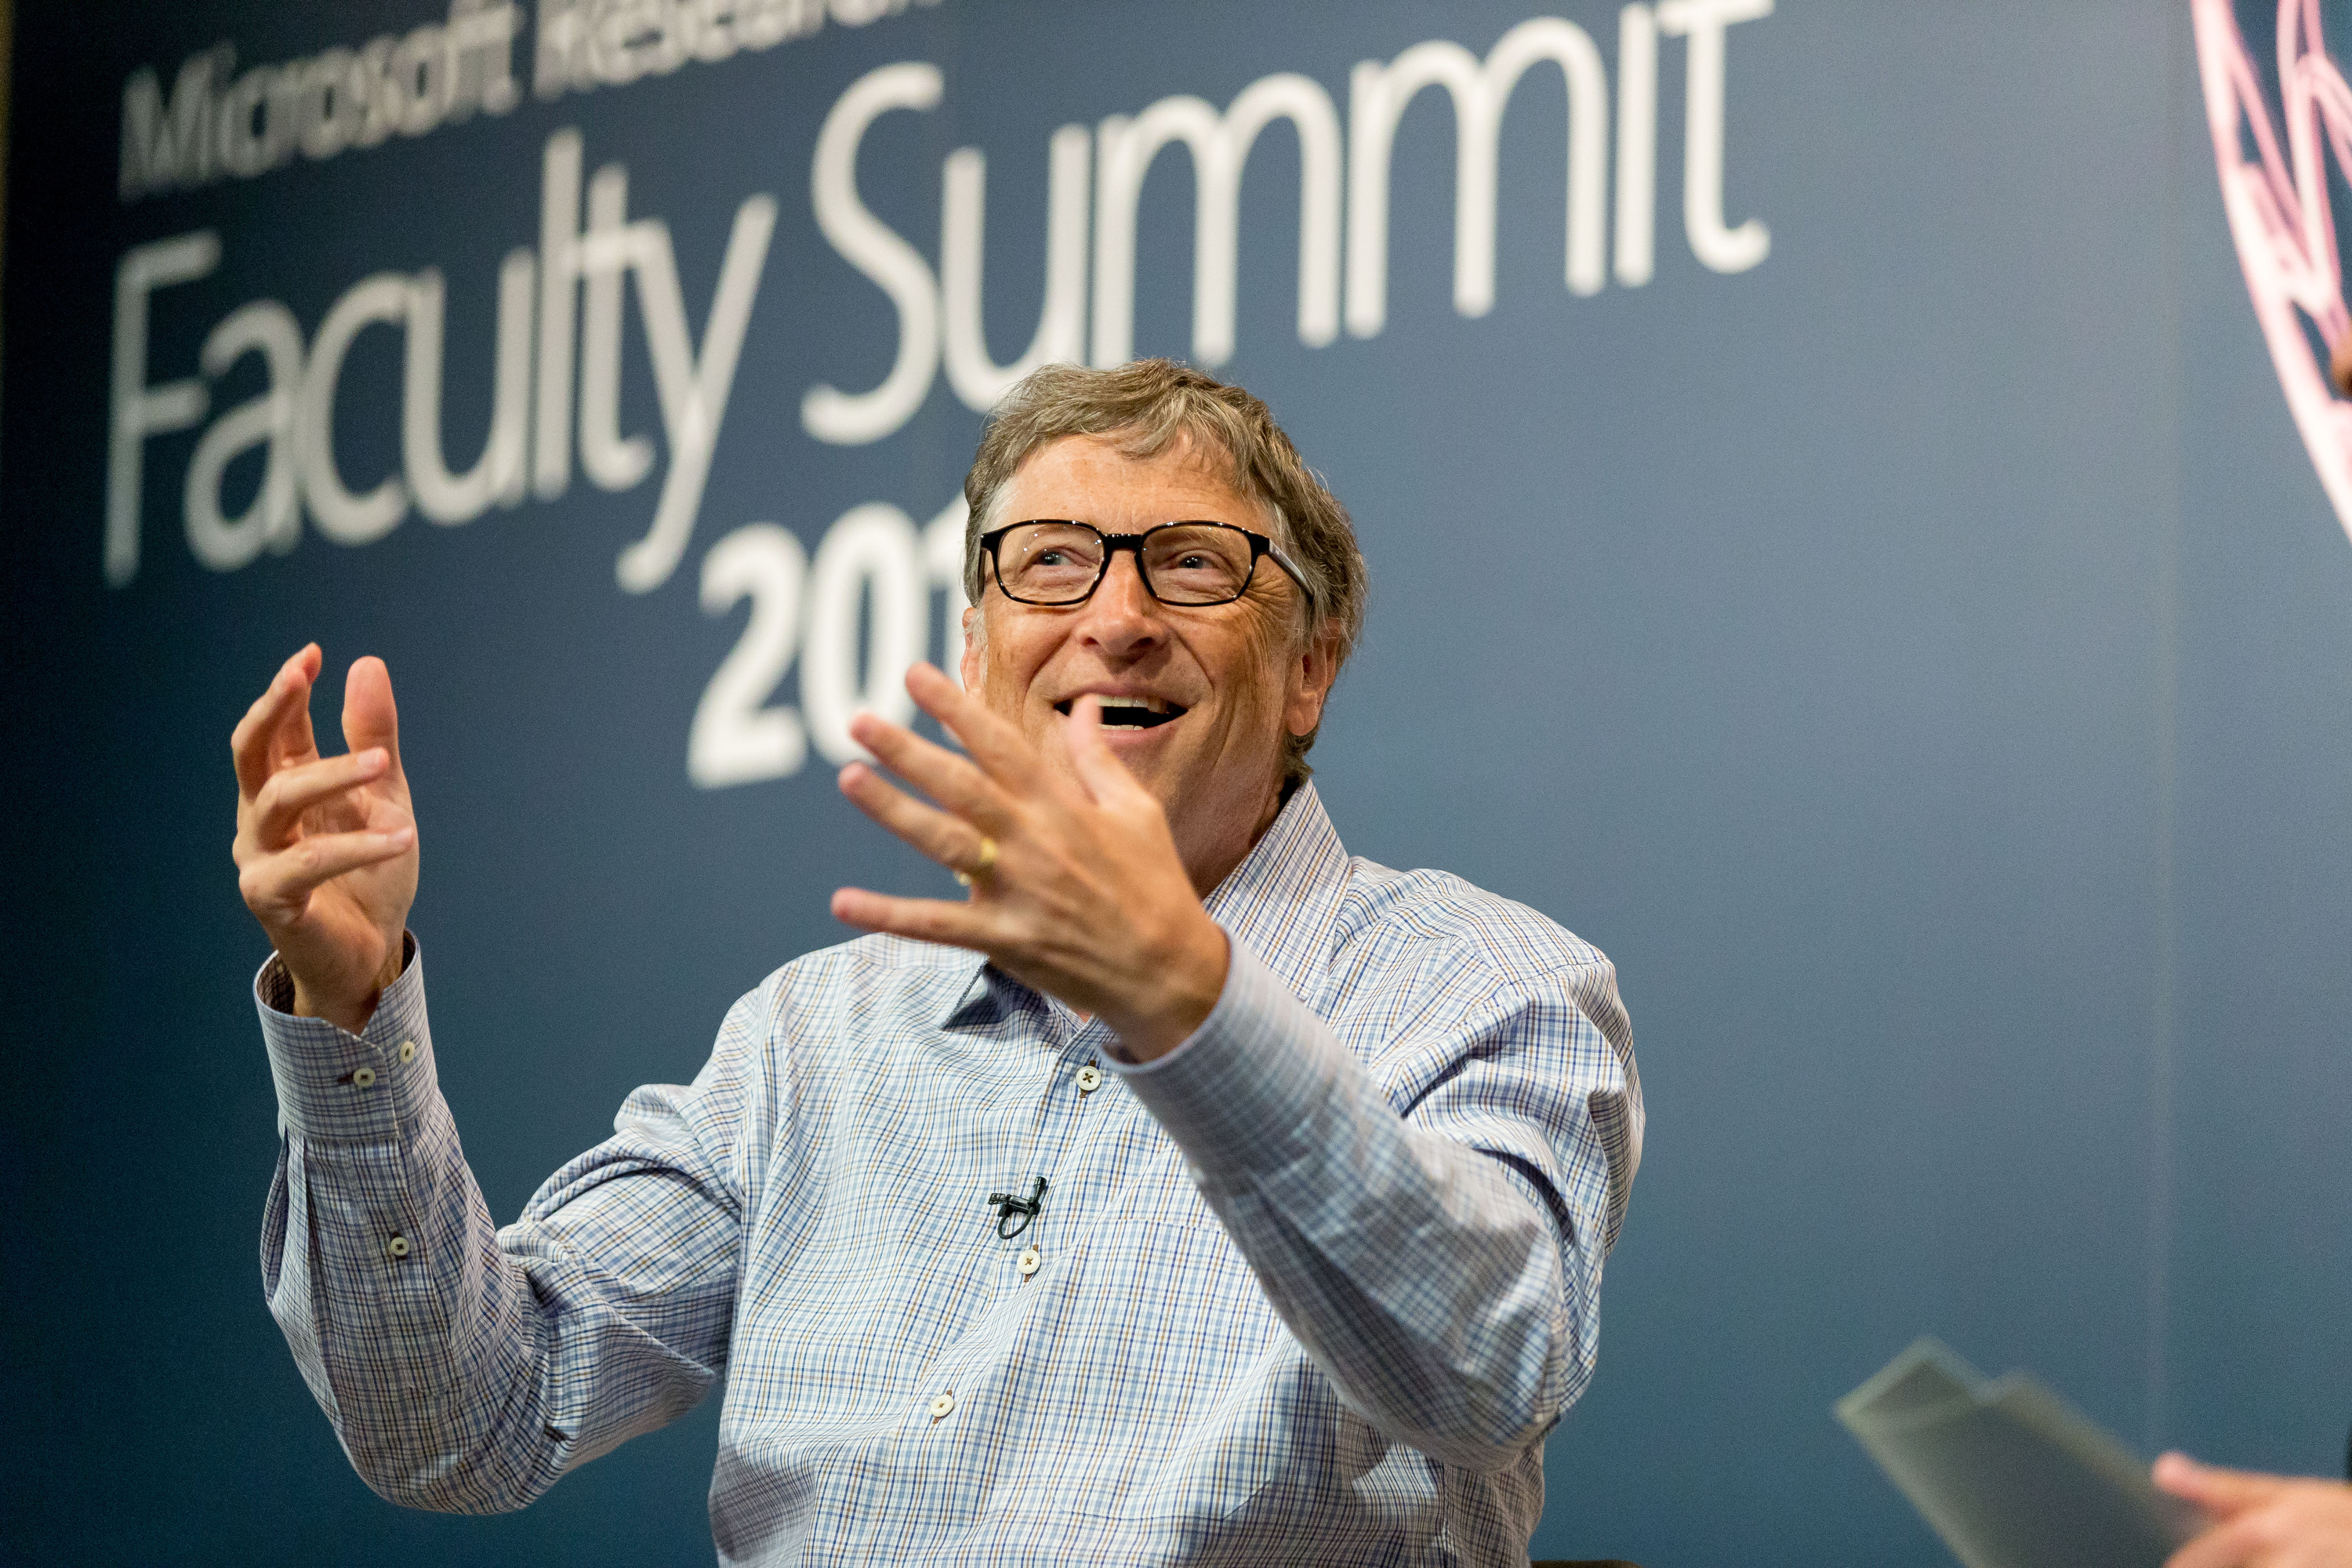 a discussion on the achievements of bill gates Mining a new future in kentucky published on january 6, 2016 bill gates follow following unfollow bill gates great teaching adds up to impressive achievements.